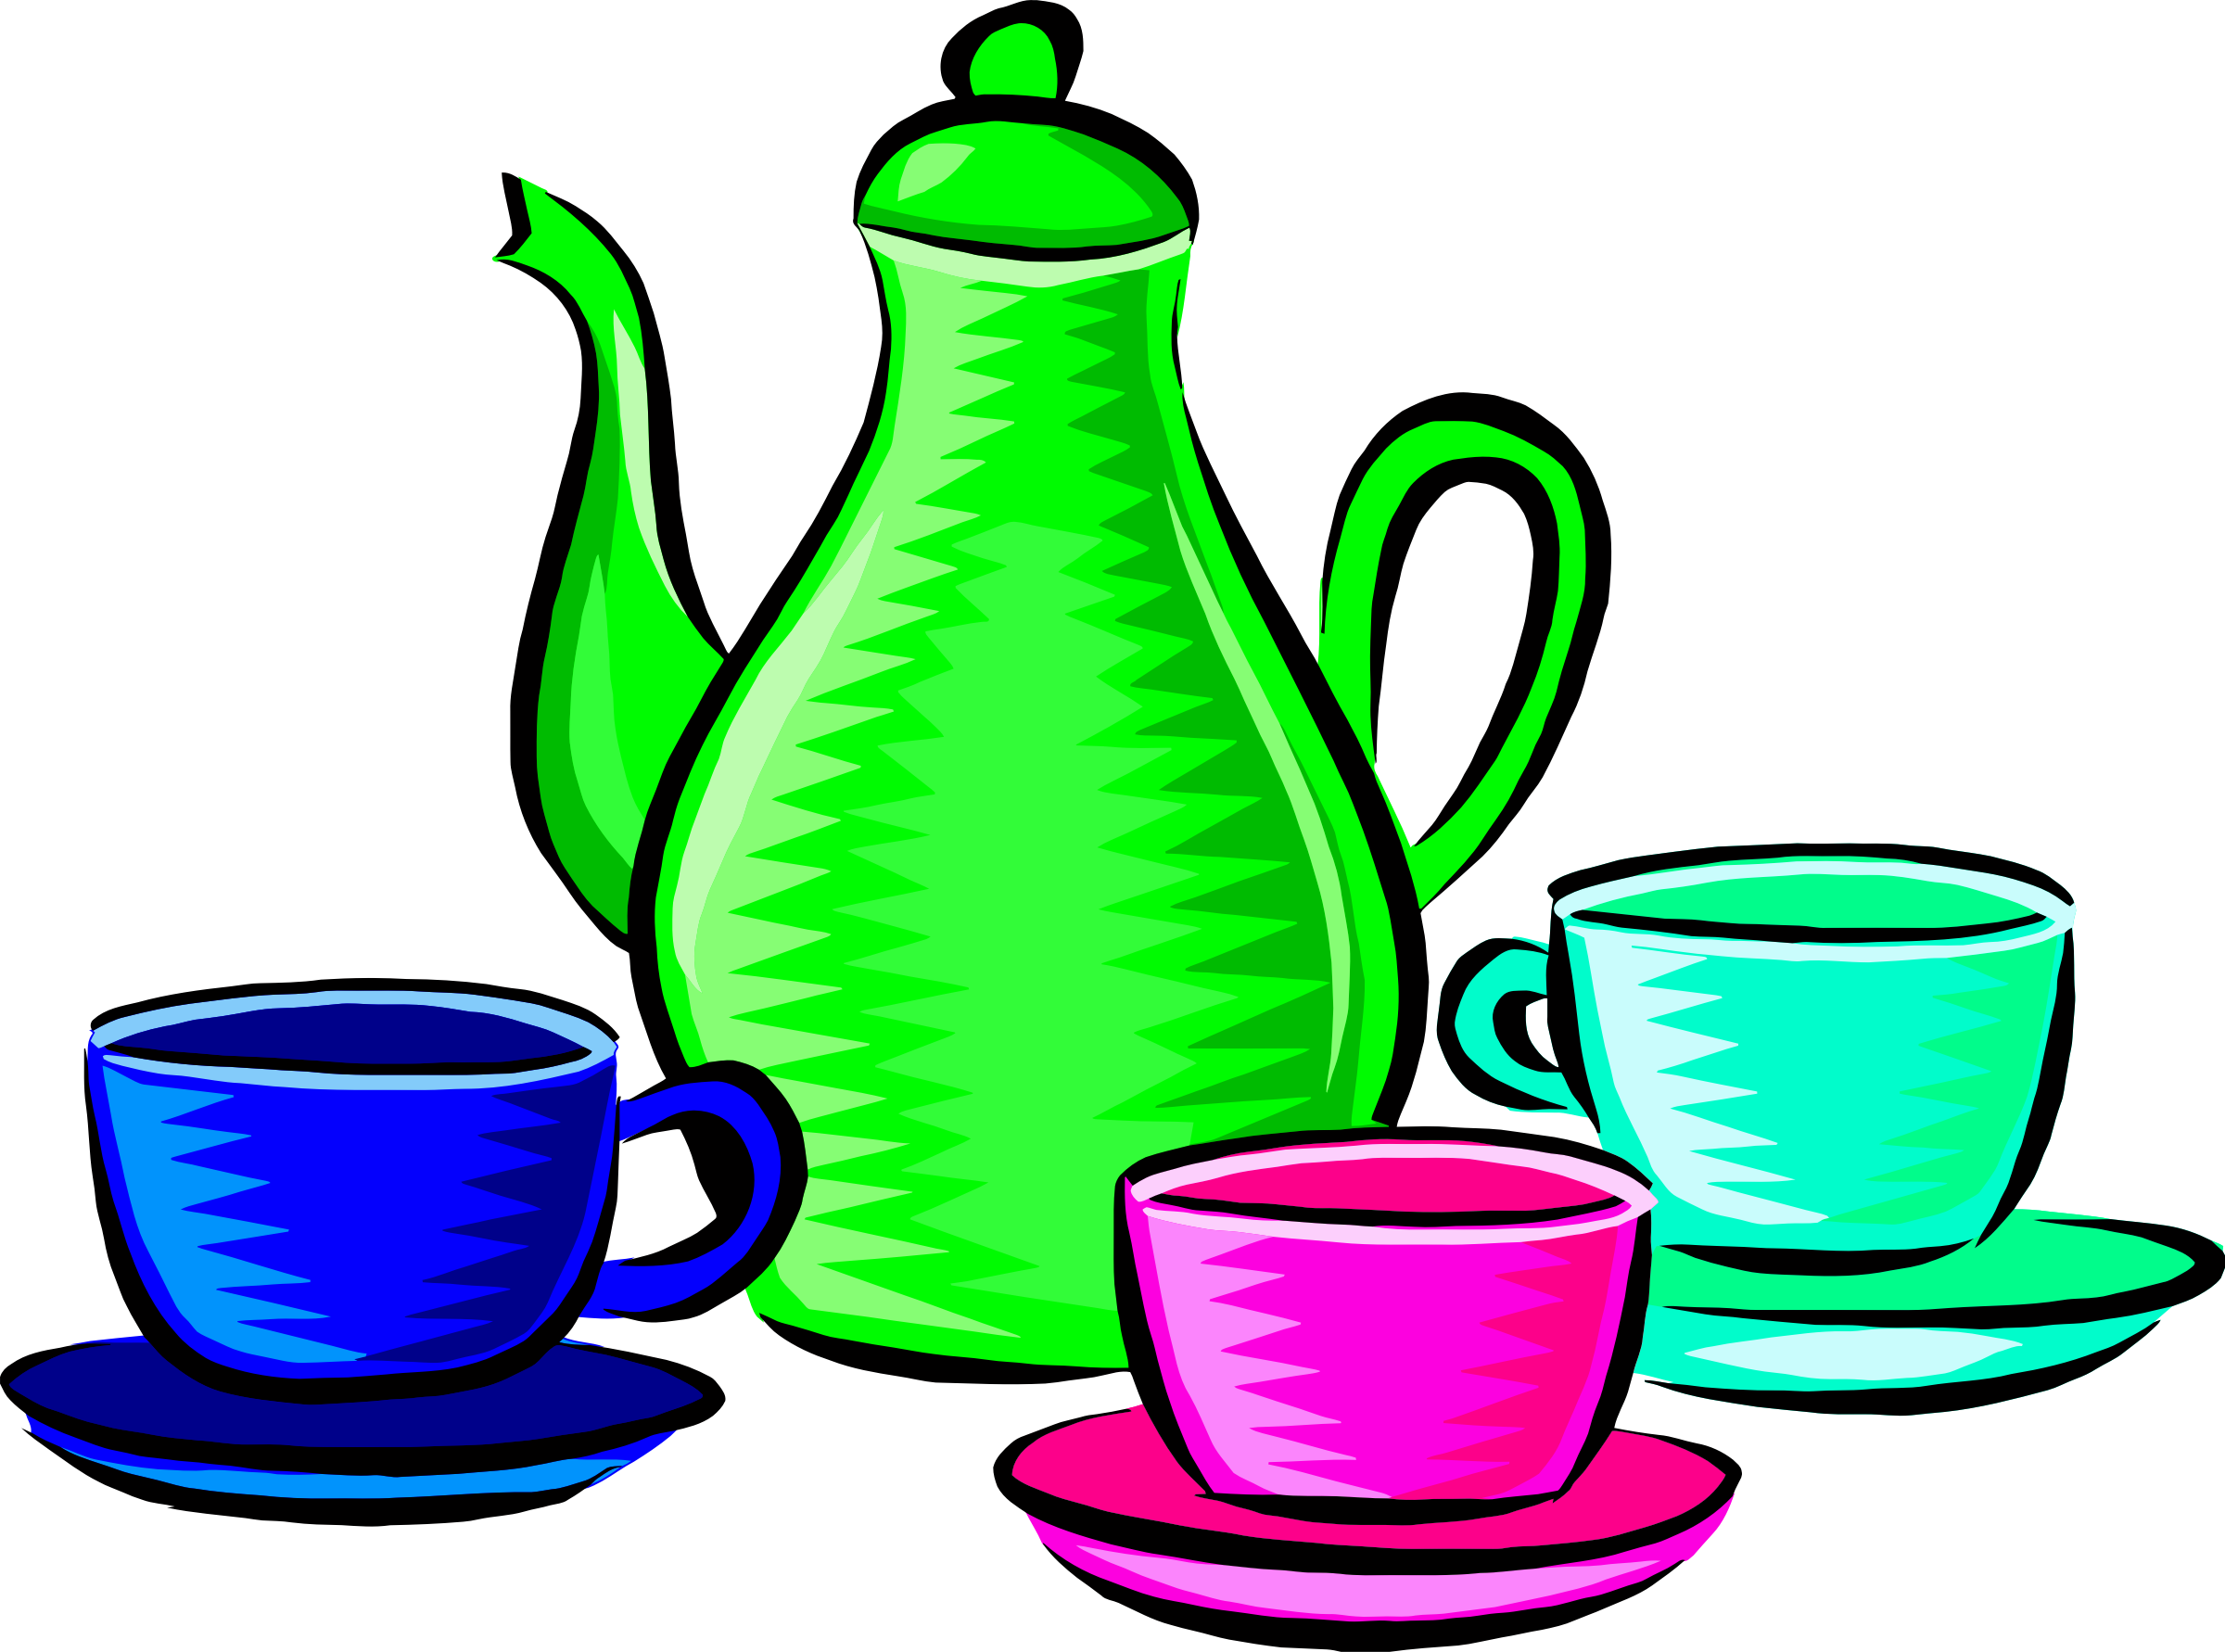 Coffee pot and cups (colour 2) by Firkin